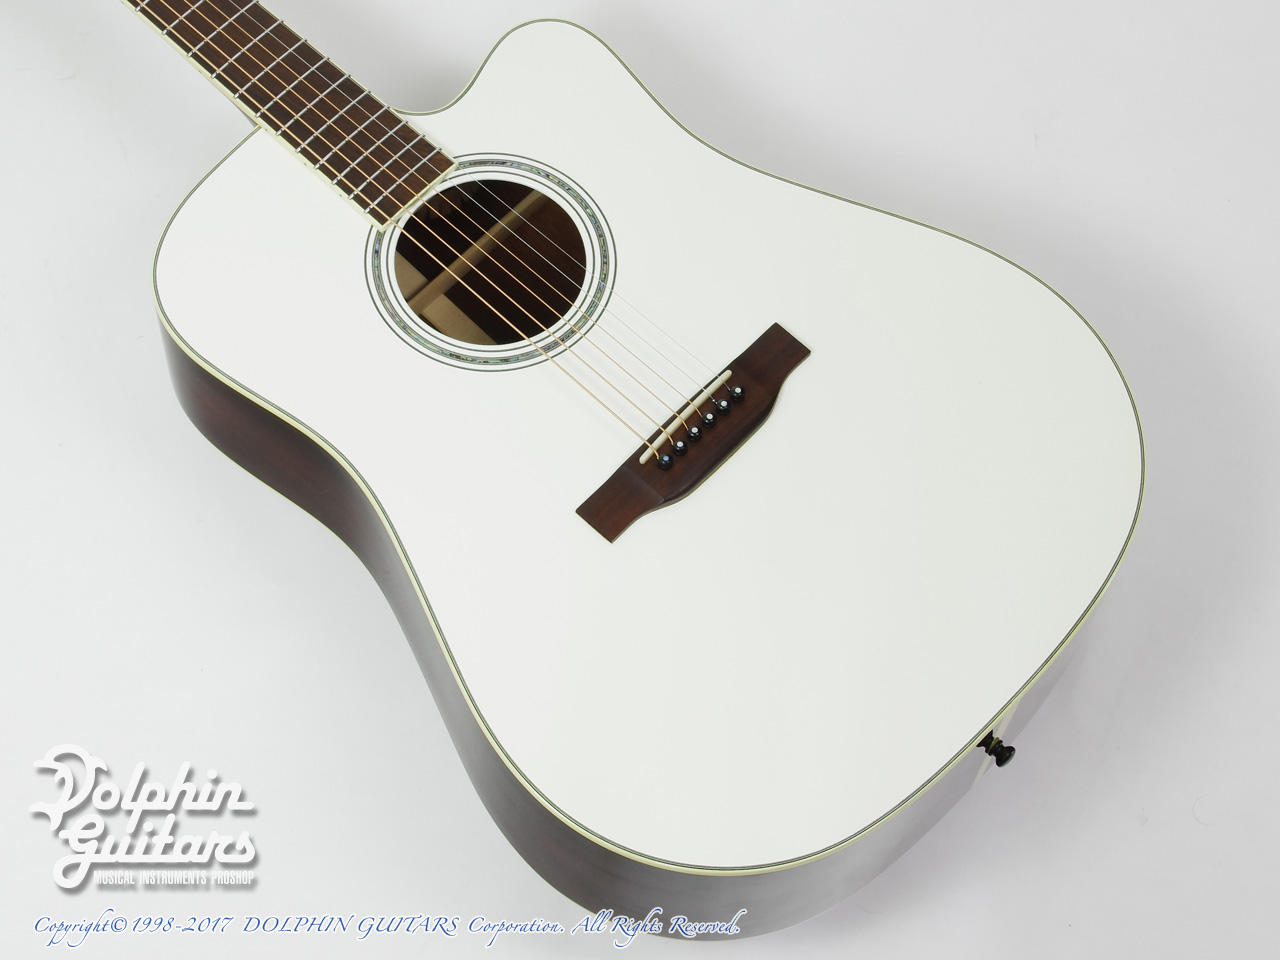 SWITCH: SCD-3C A-Caa Limited (Adirondack Spruce & Cocobolo) (Pearl White Face)